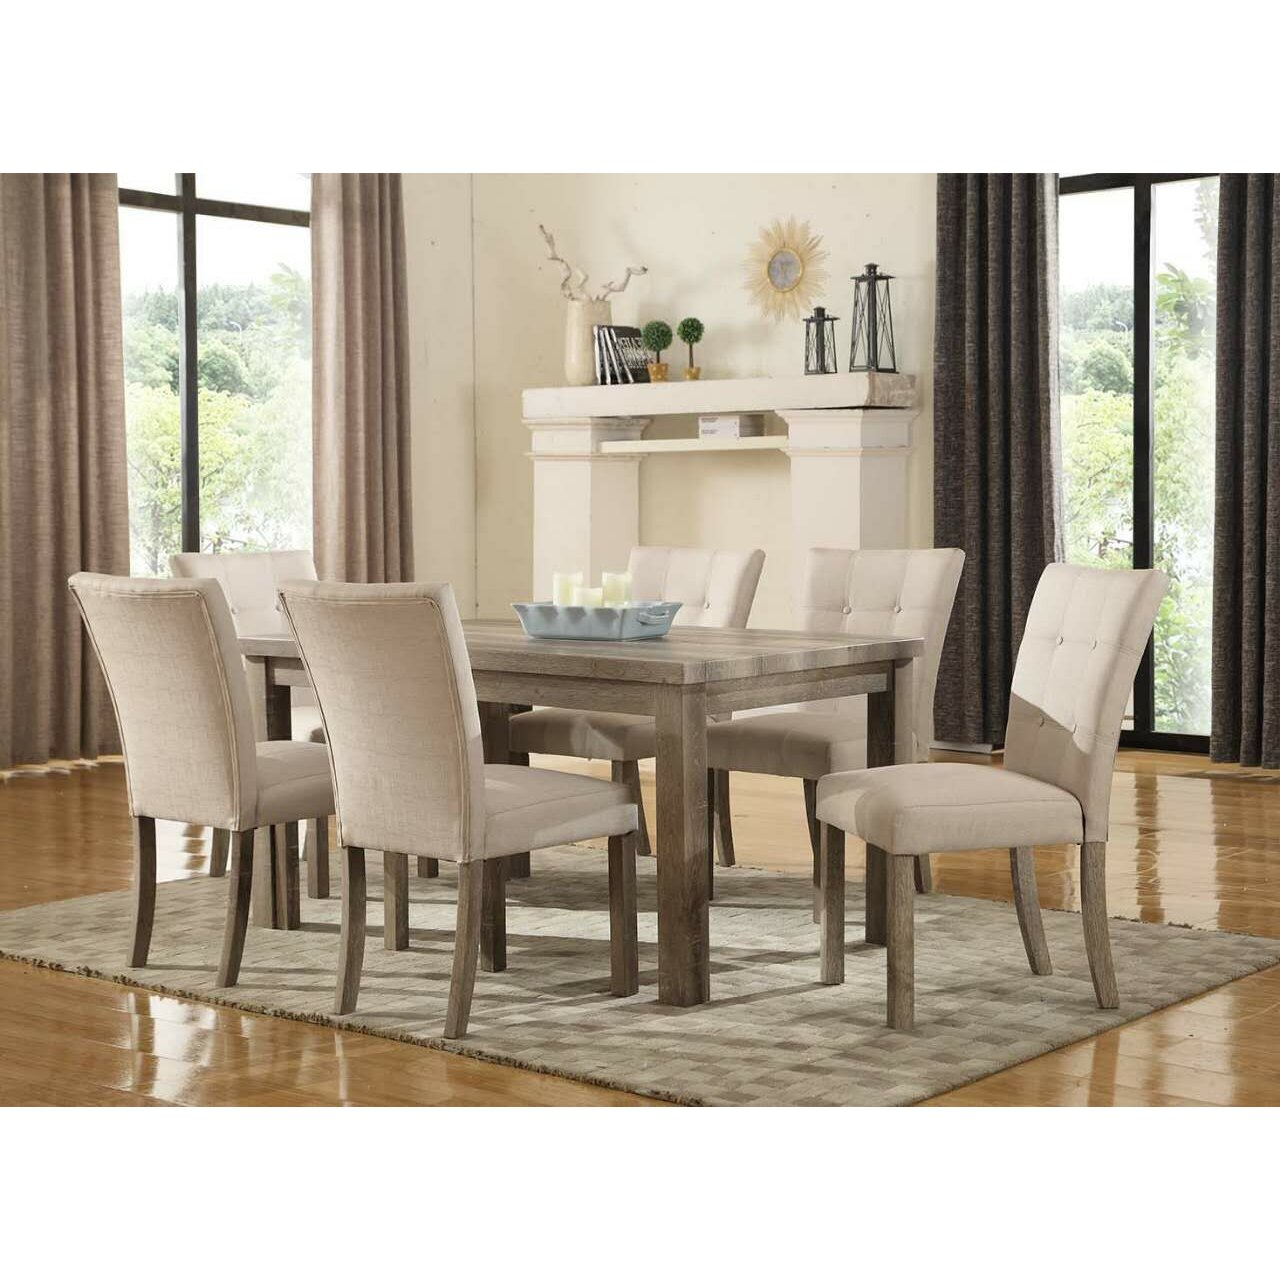 Brussels Traditional Dining Room Set 7 Piece Set: Ultimate Accents Urban 7 Piece Dining Set & Reviews